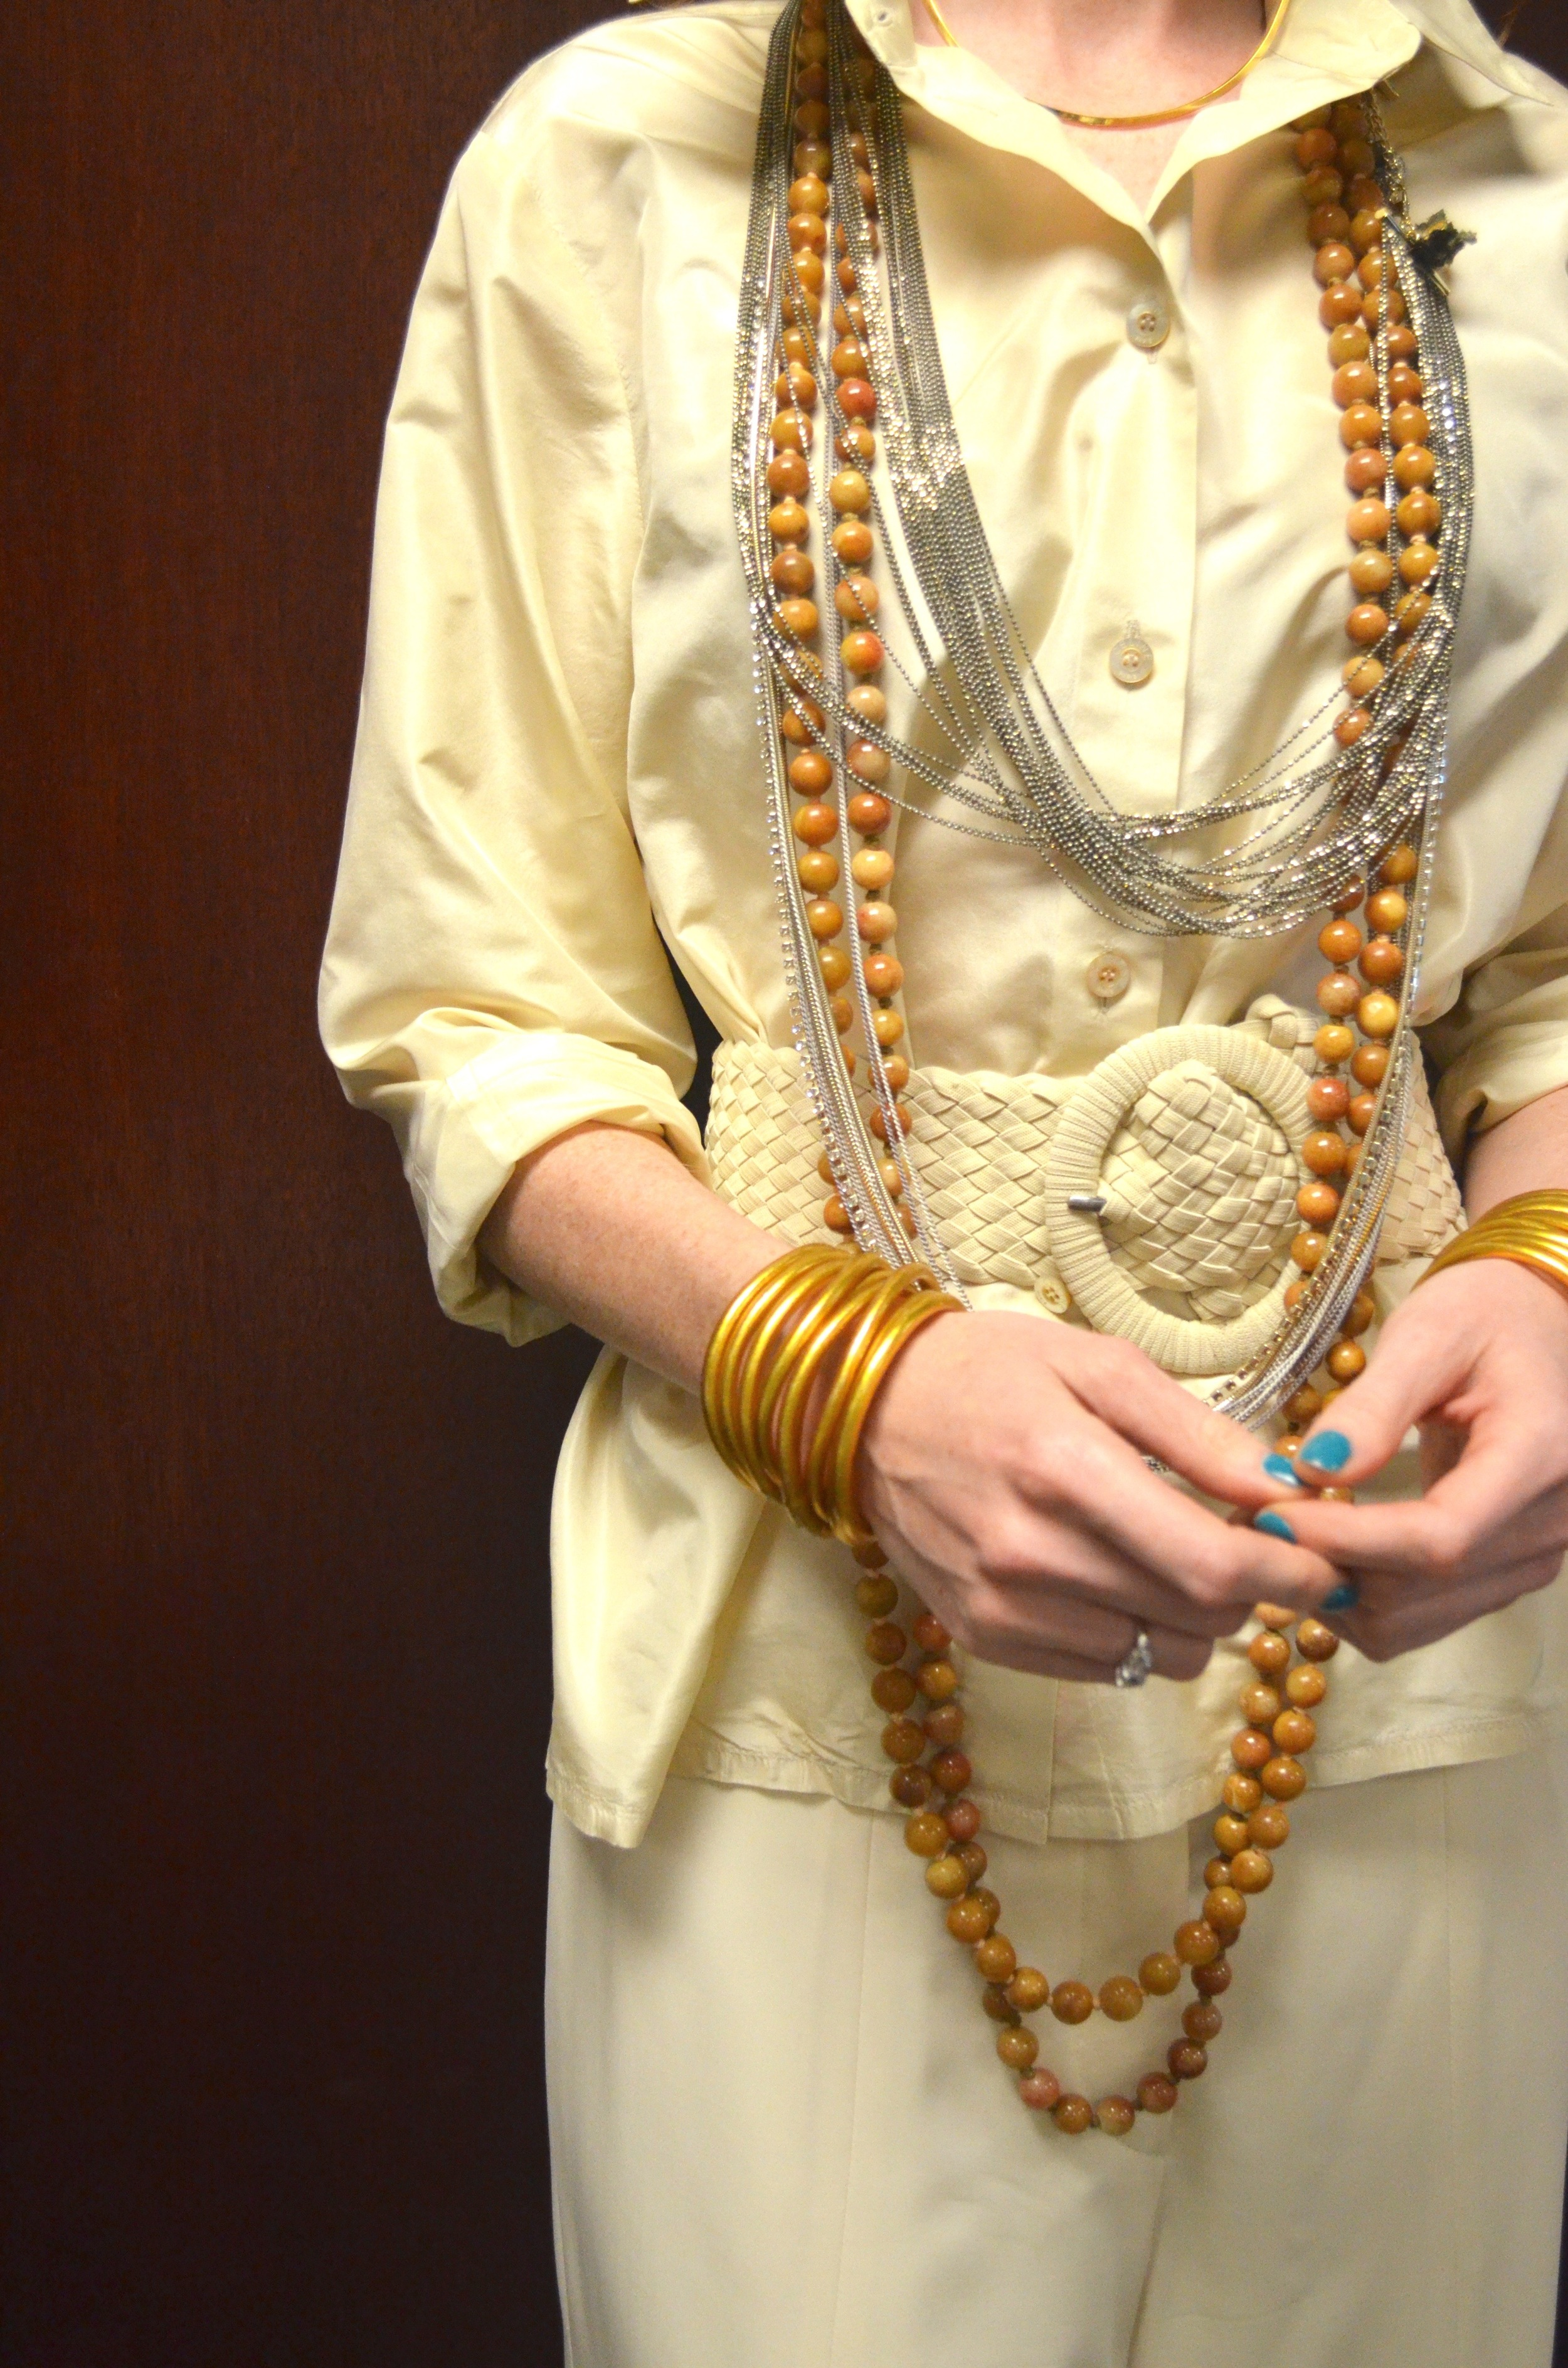 A gold  torque ,  strand necklaces  and  budhabeads  coexist.